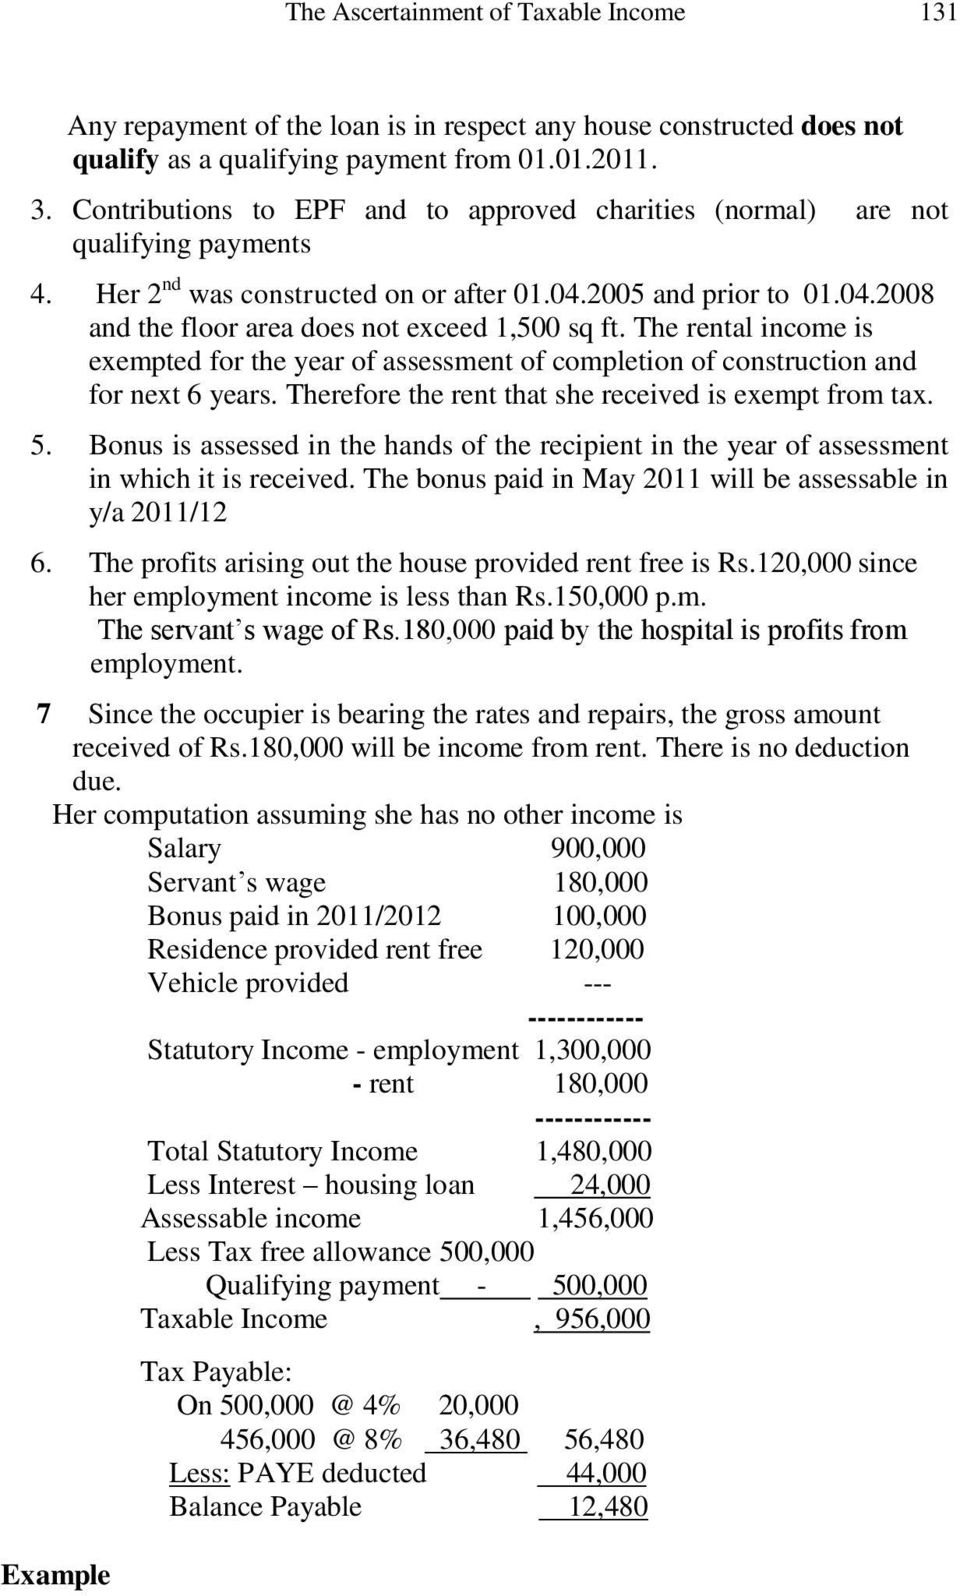 10  The Ascertainment of Taxable Income - PDF